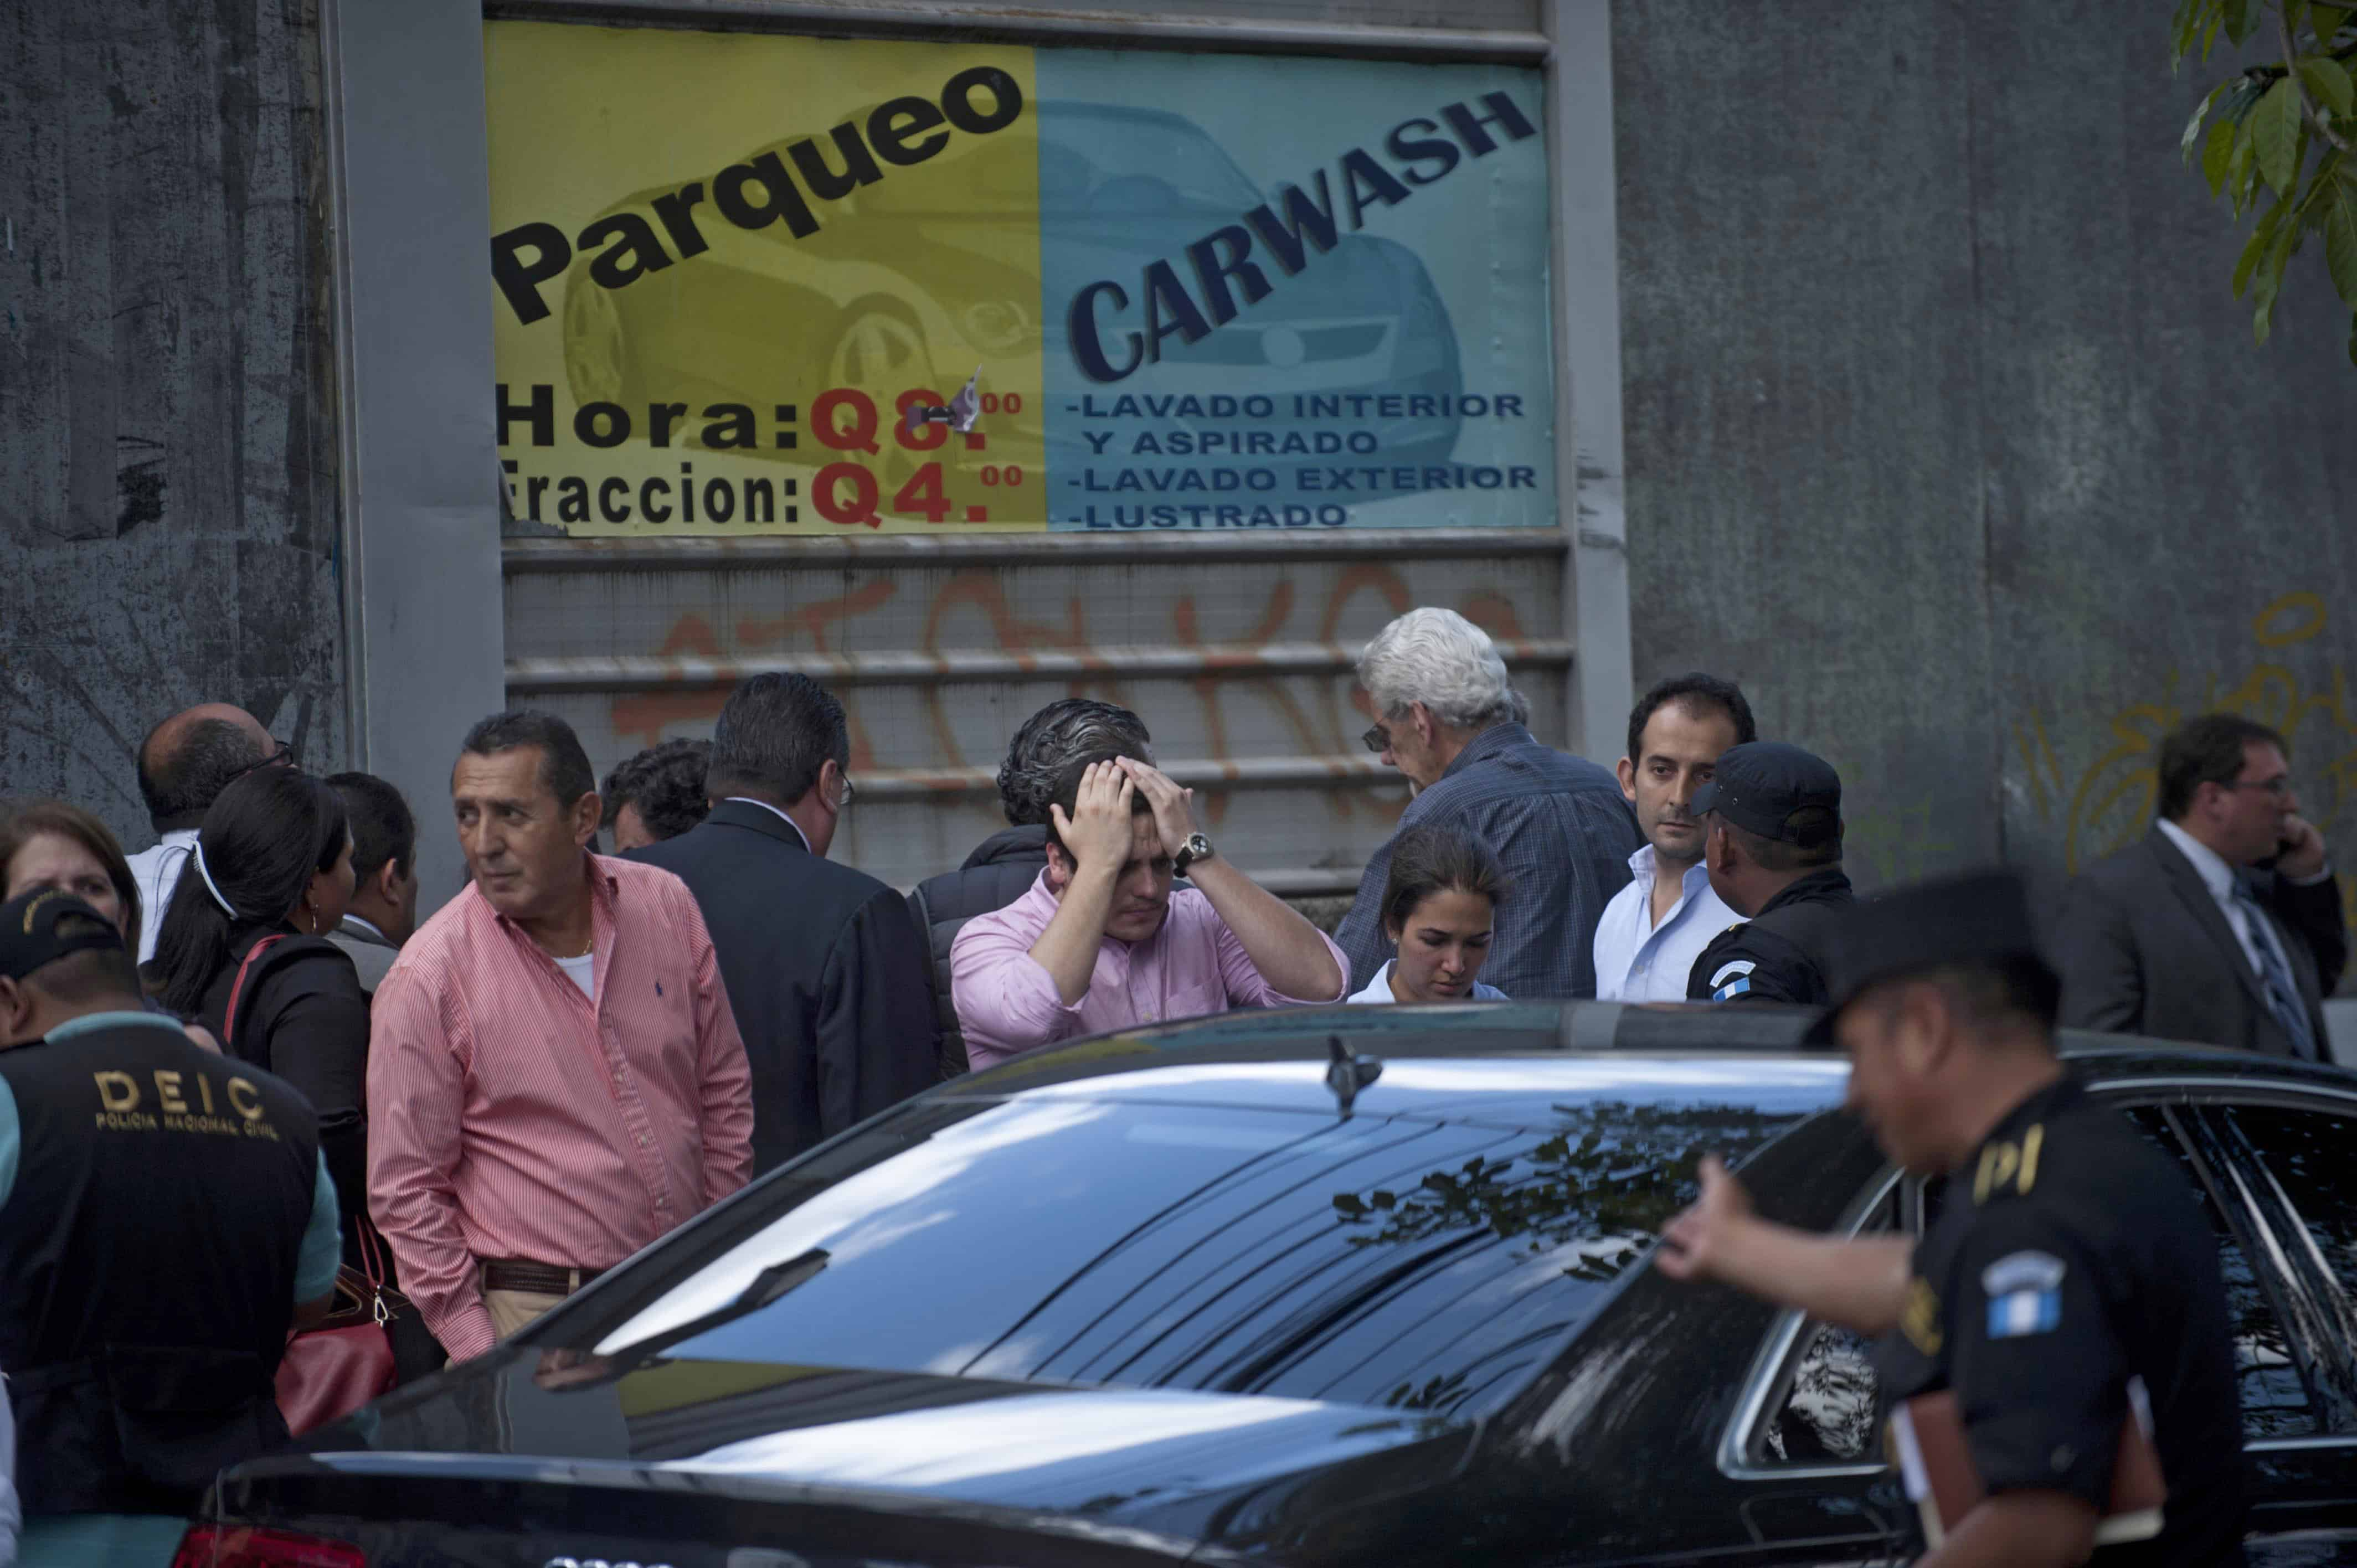 Relatives arrive at the crime scene after Francisco Palomo, an attorney for Guatemala's former dictator Efraín Ríos Montt, was shot dead.